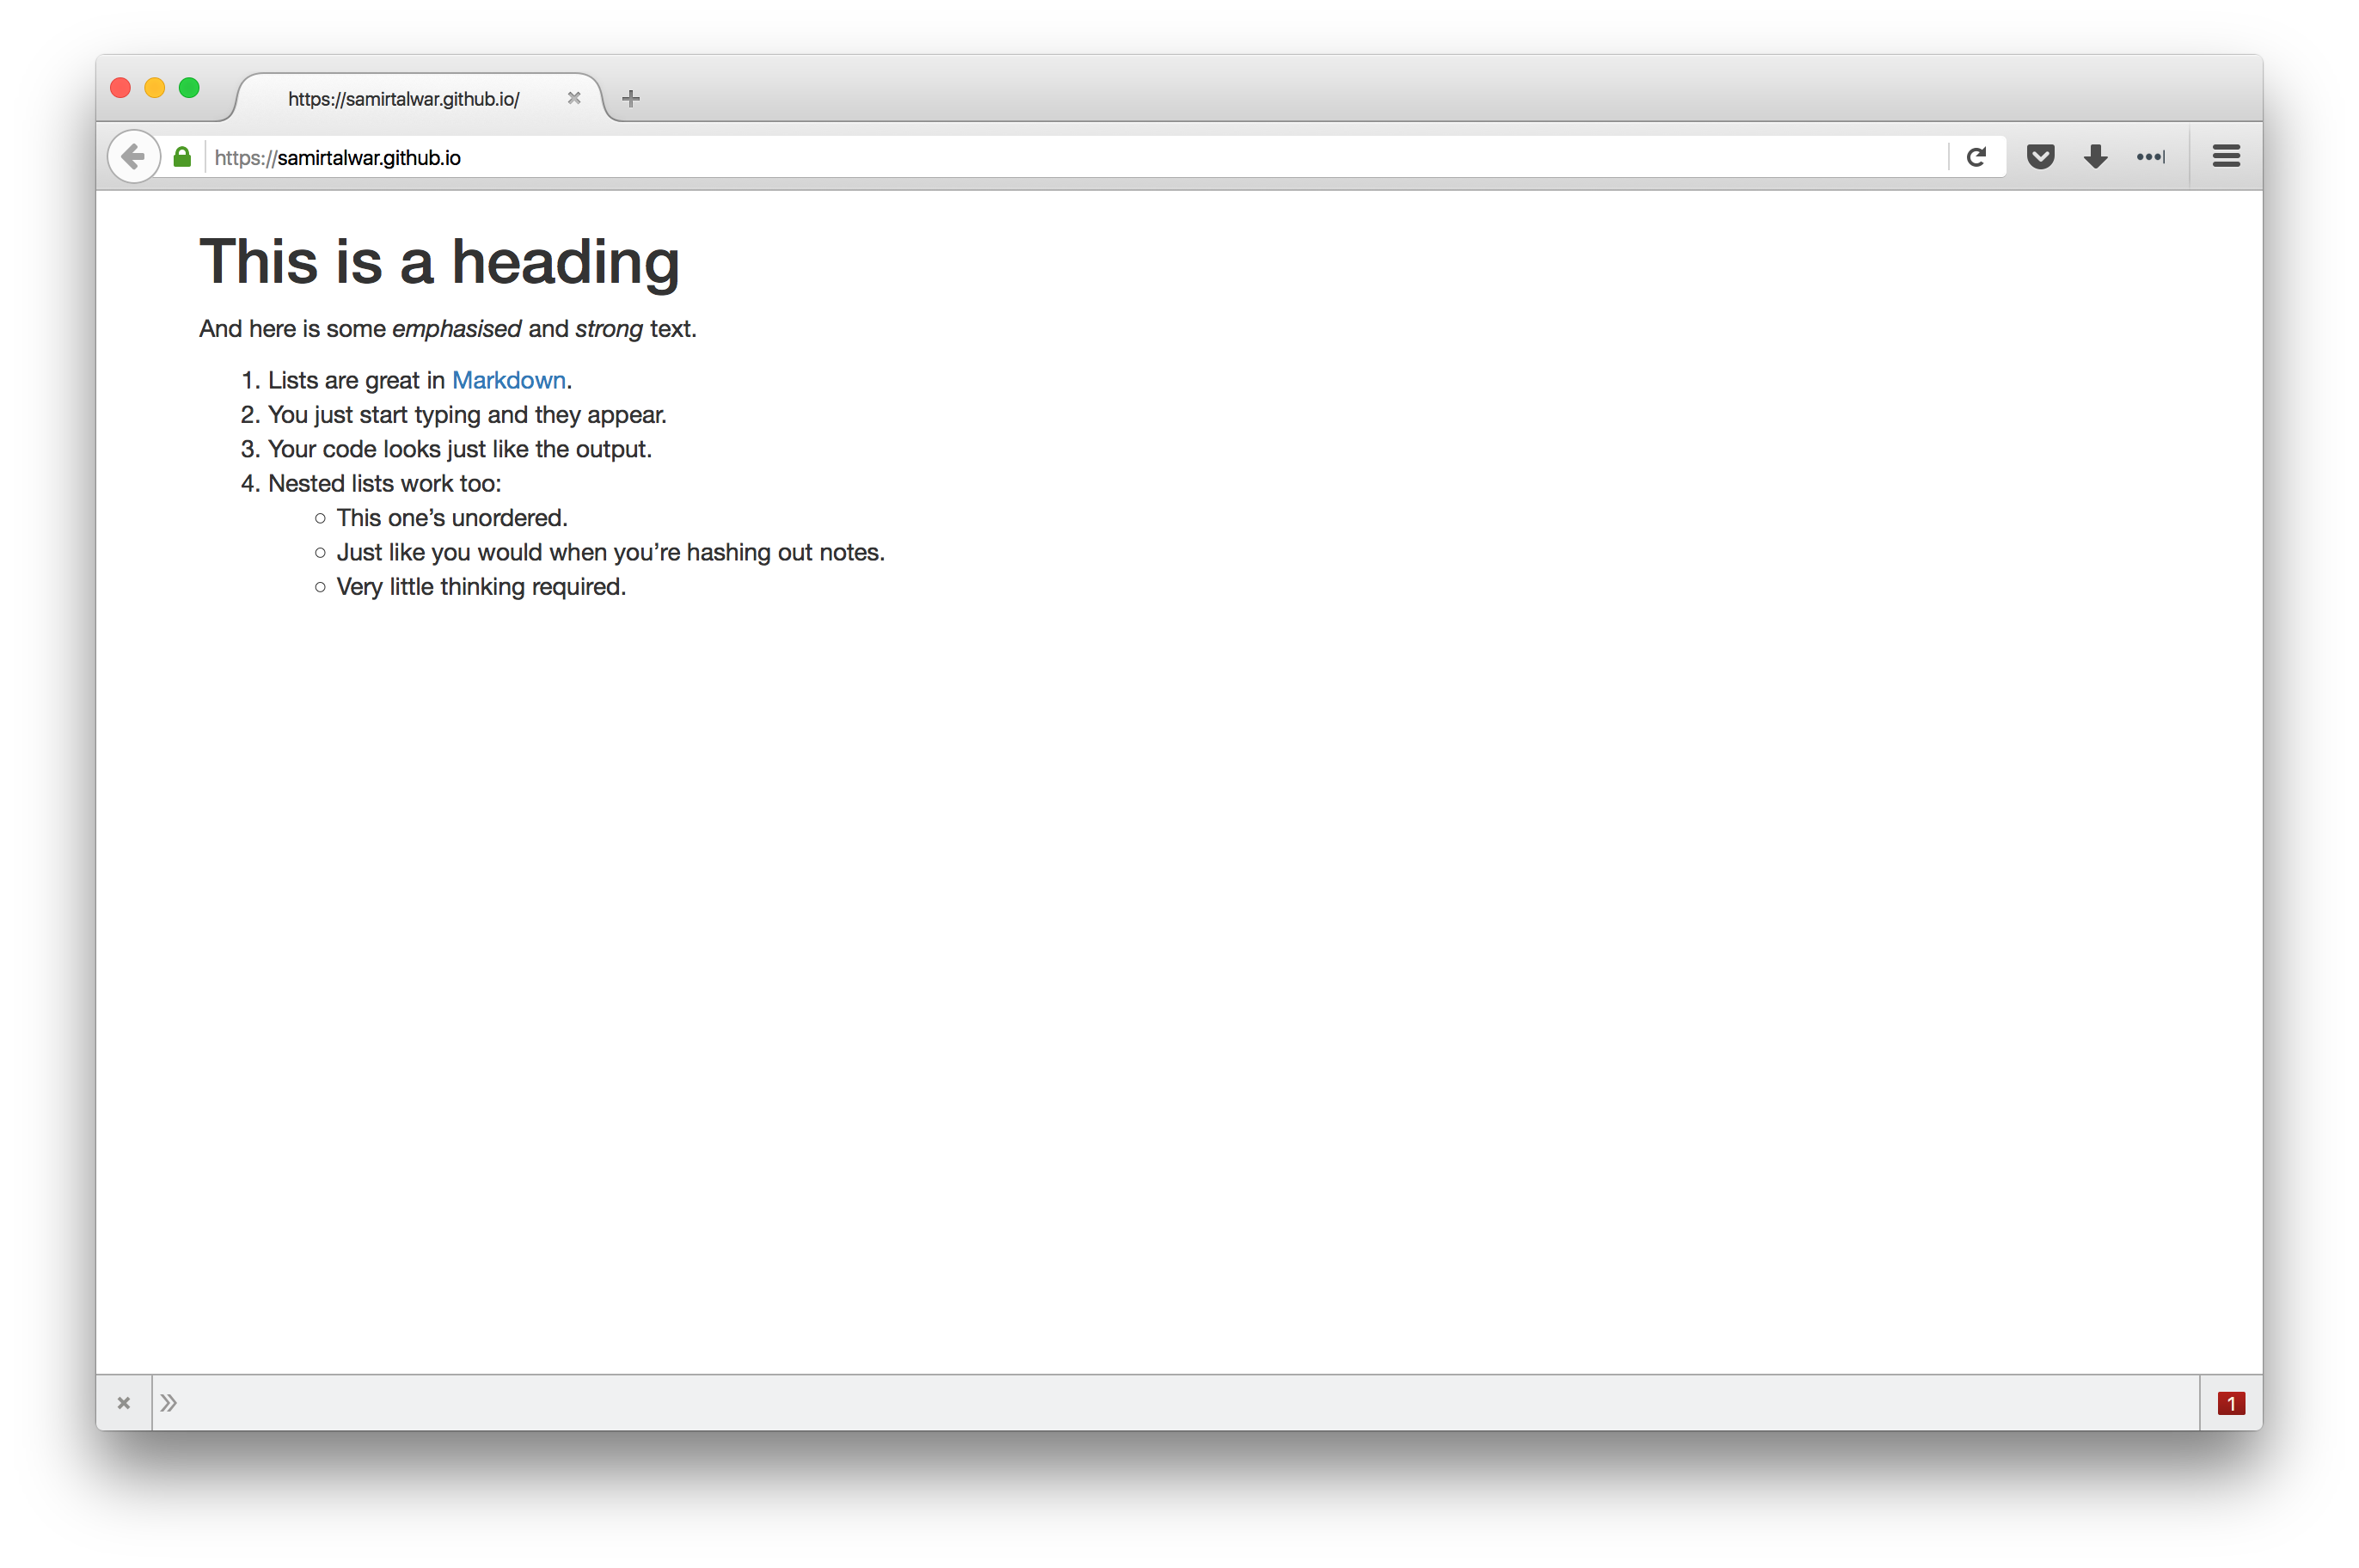 Tutorial: How to host your websites for free using Github